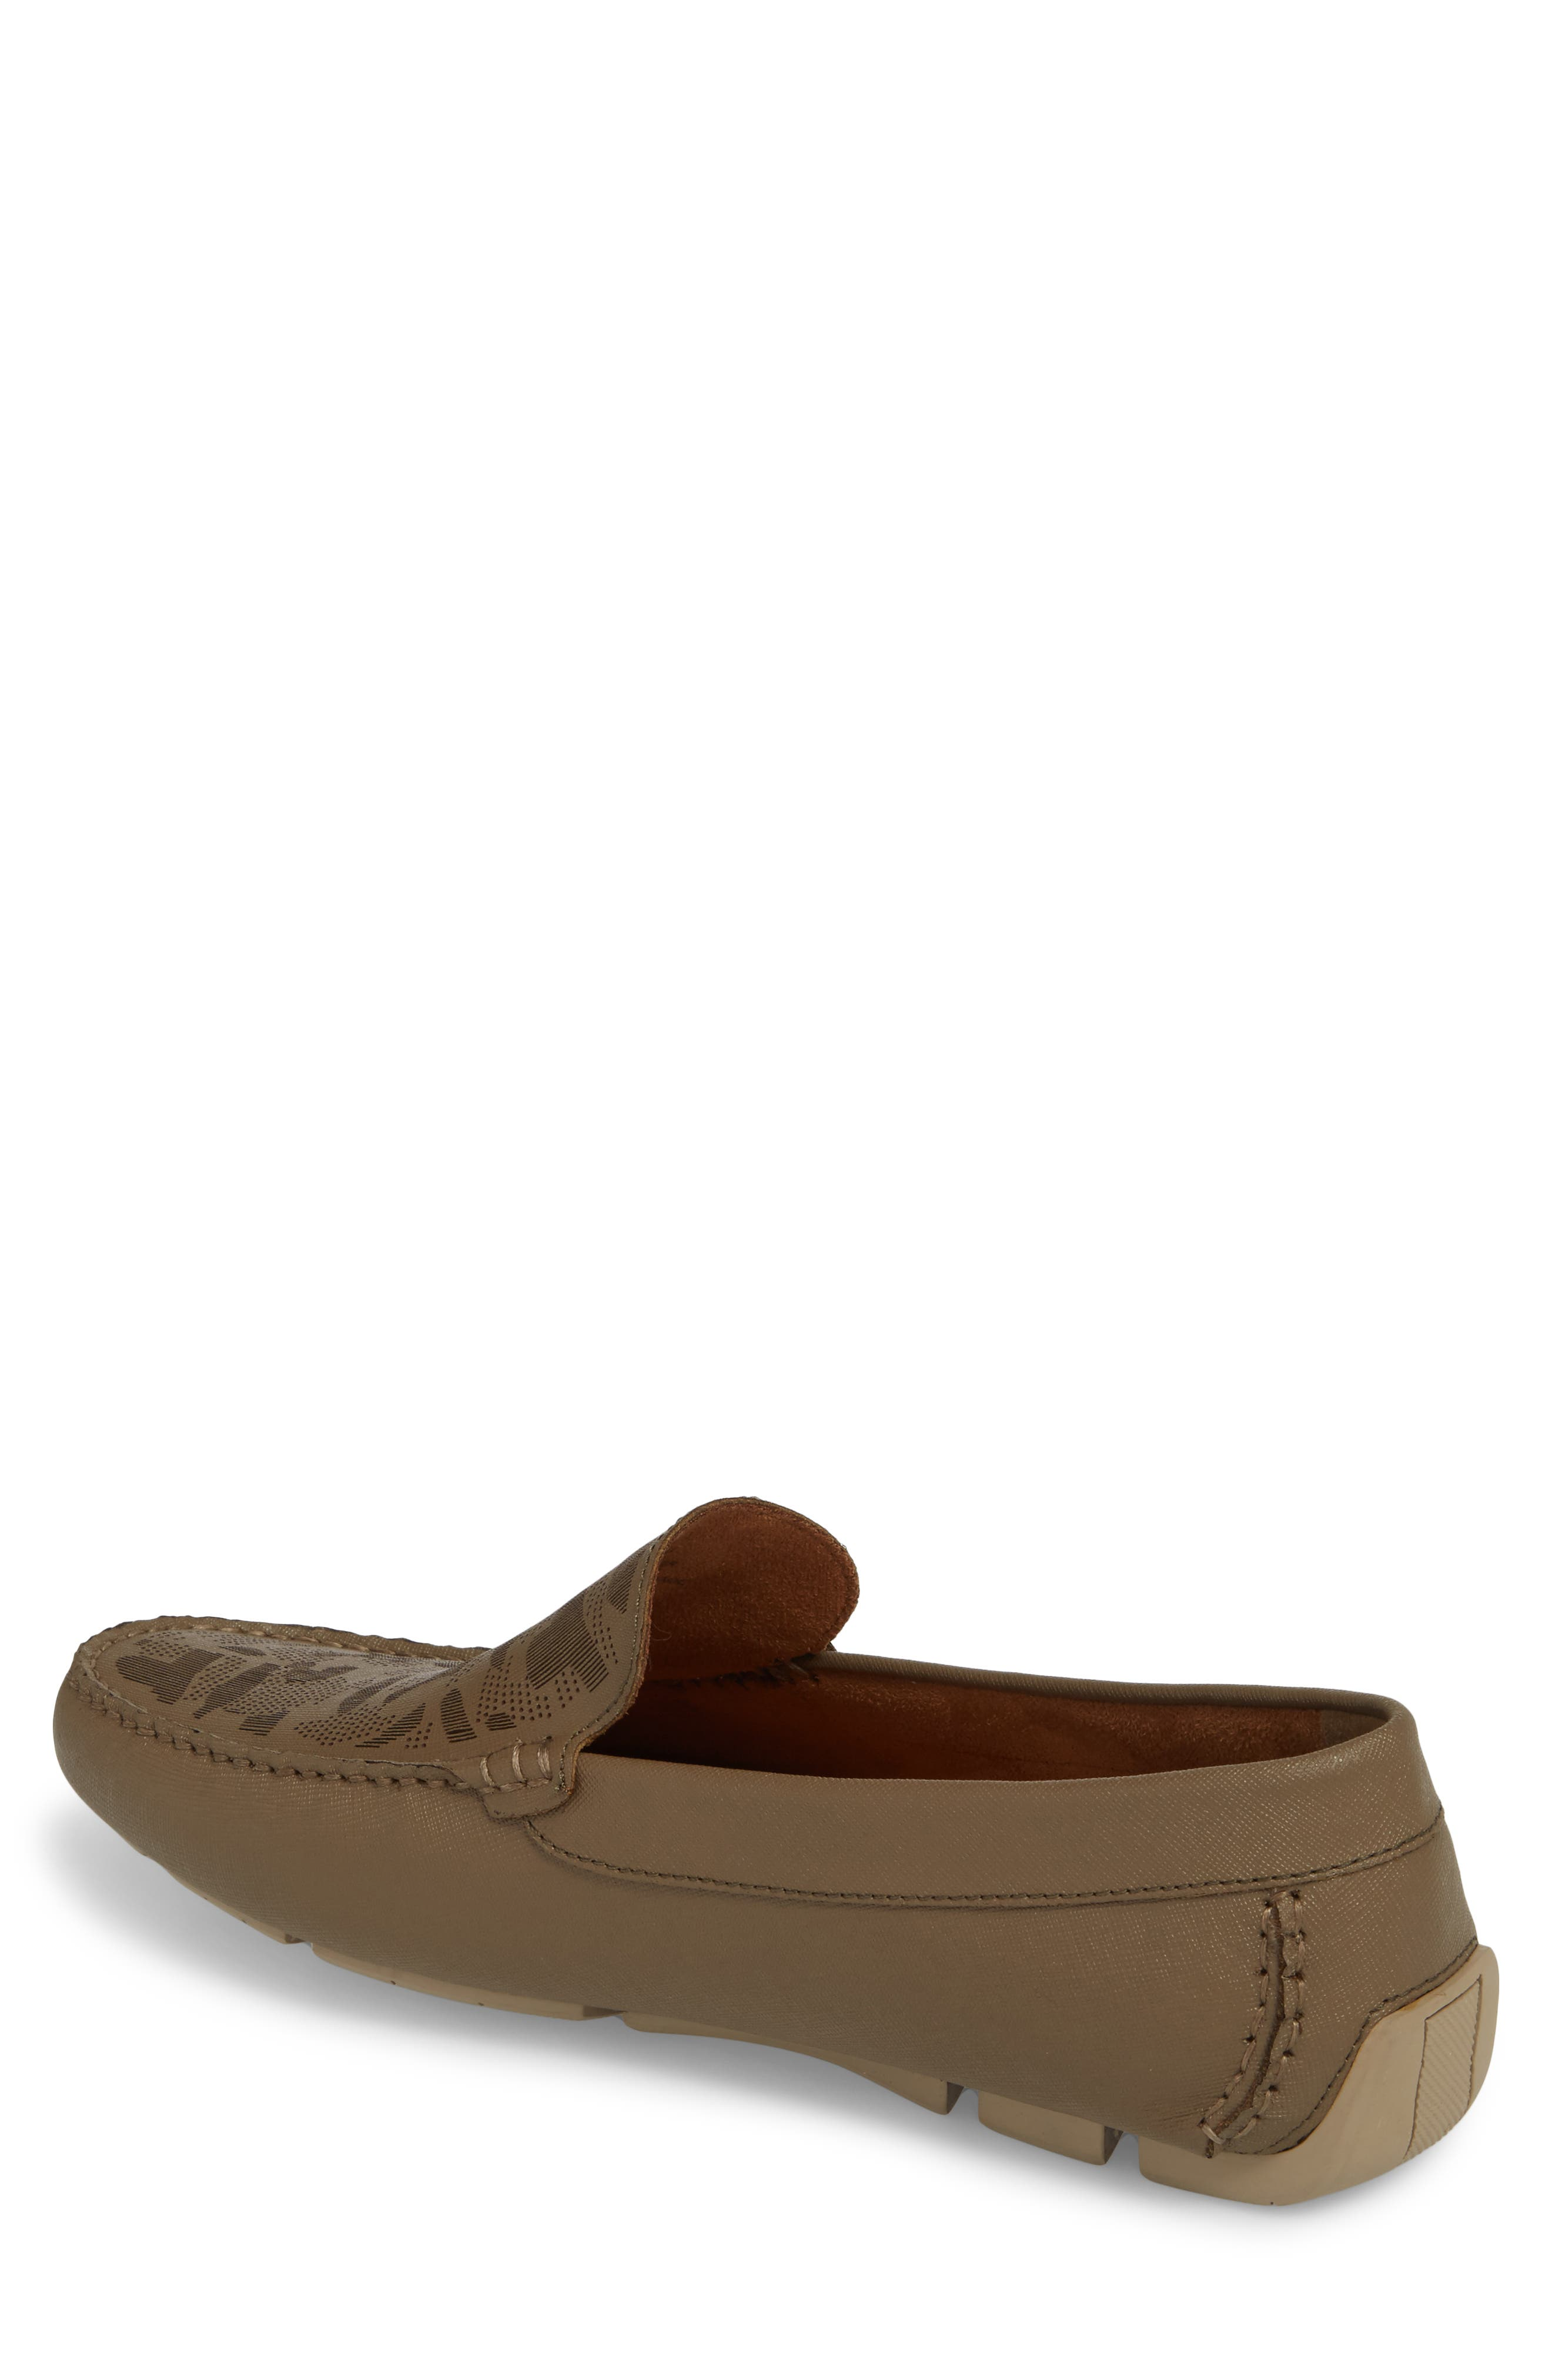 Theme Song Driving Shoe,                             Alternate thumbnail 2, color,                             Taupe Leather